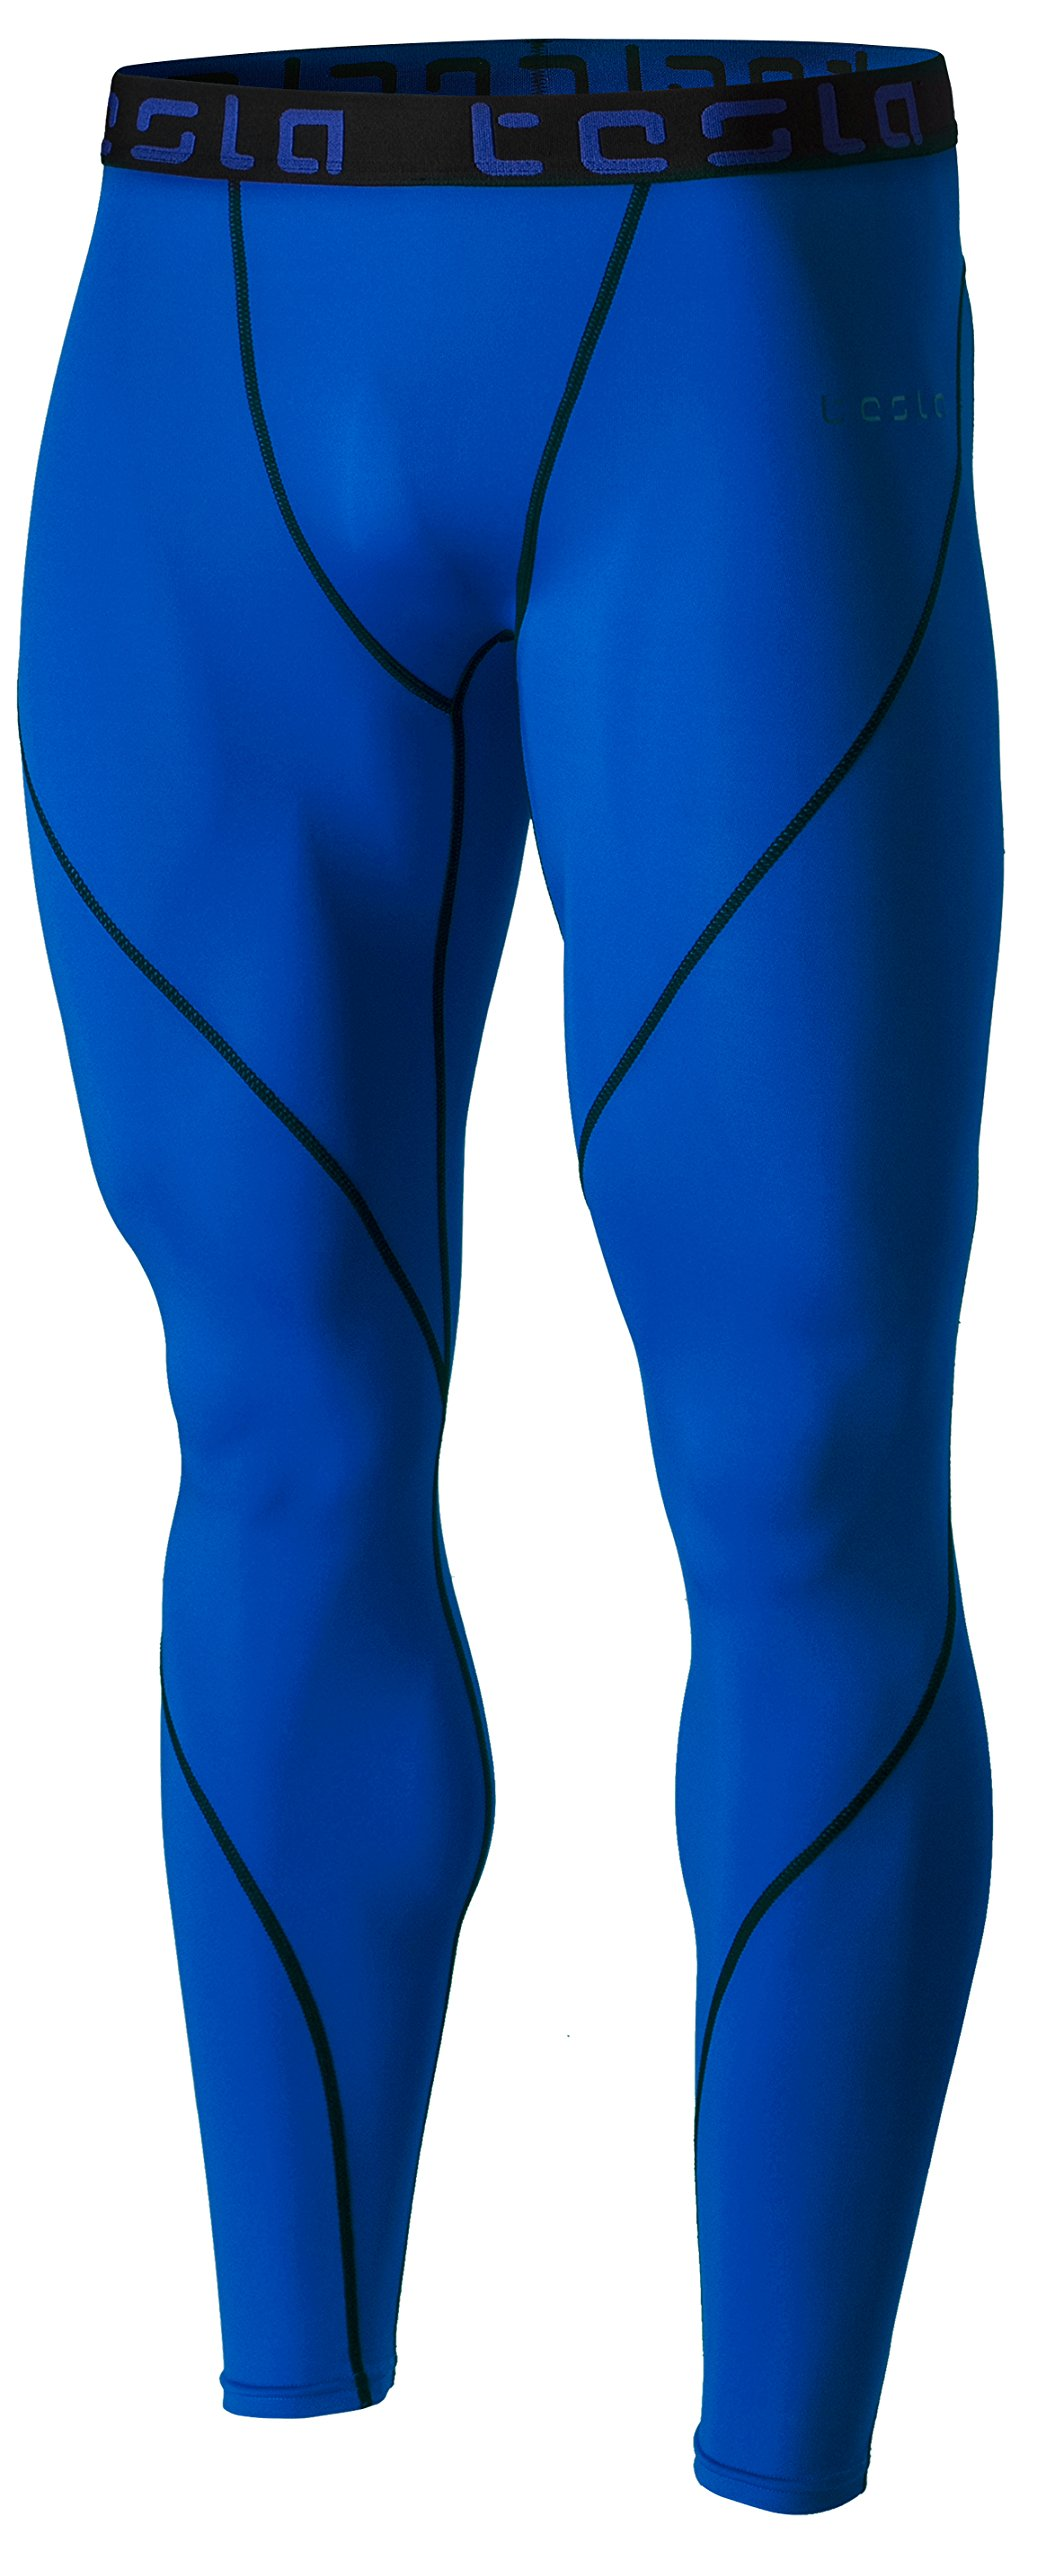 TSLA Men's Compression Pants Running Baselayer Cool Dry Sports Tights, Athletic(mup19) - Blue, 2X-Large by TSLA